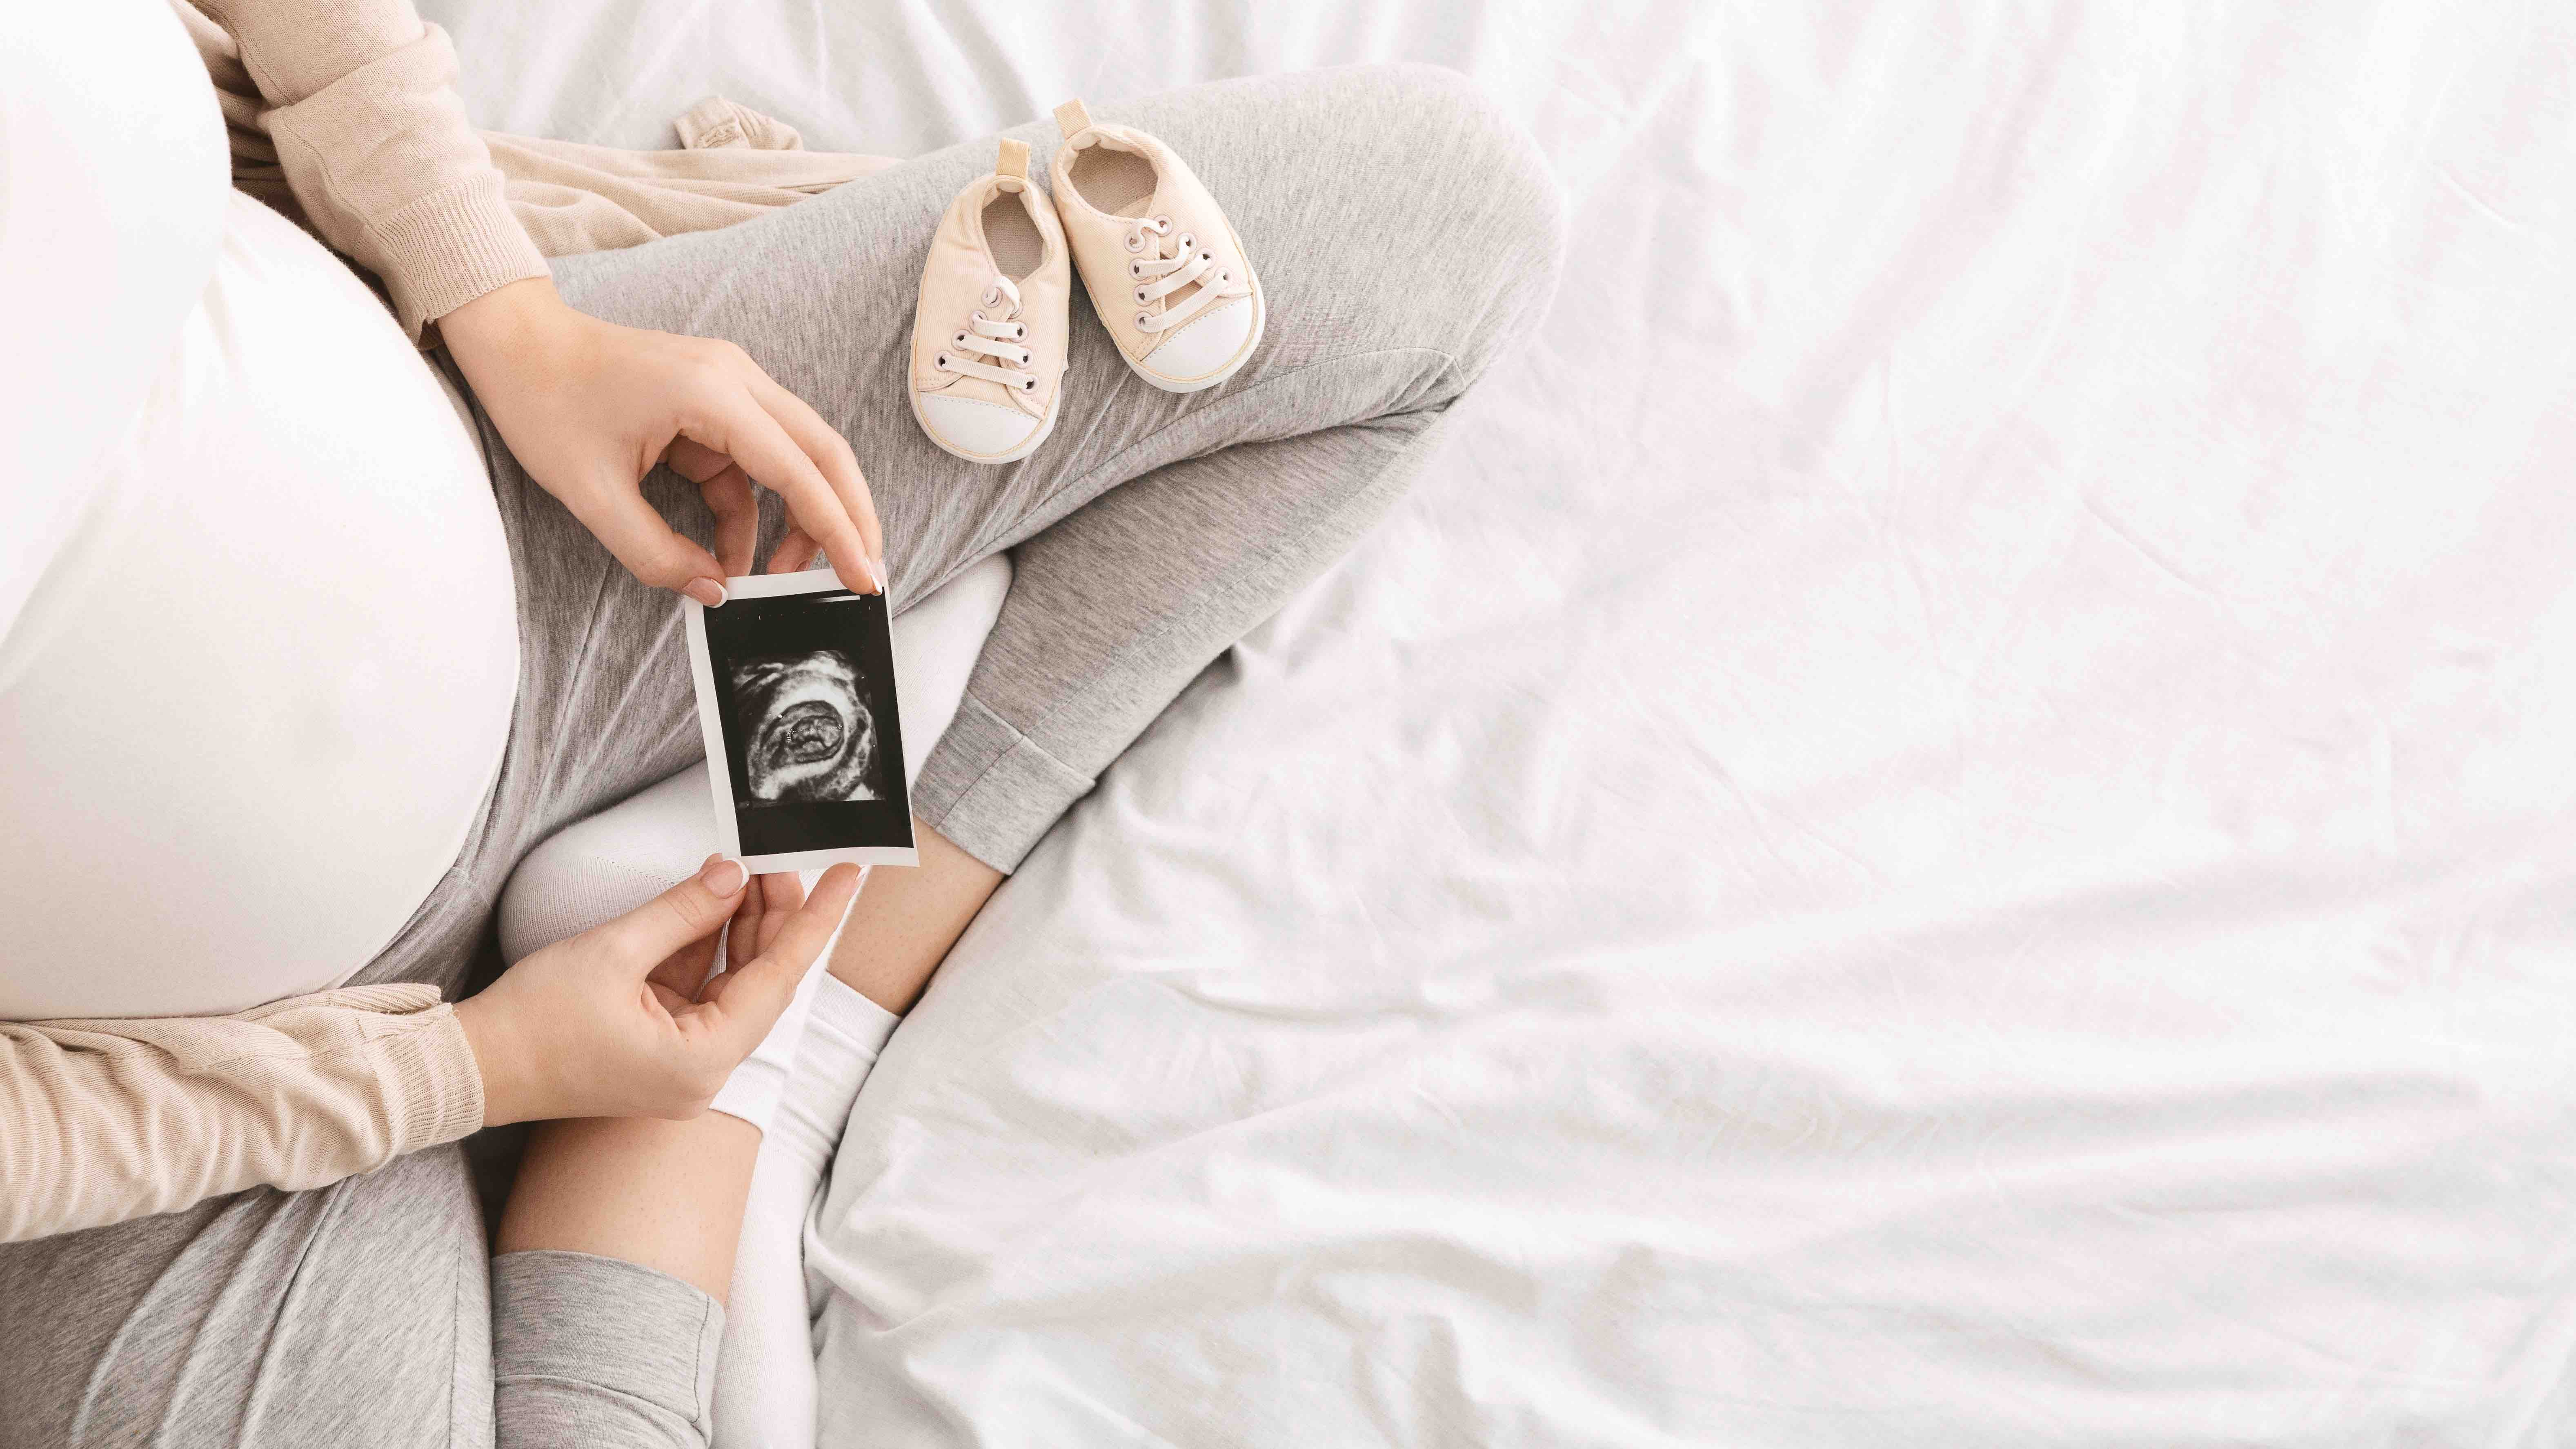 Pregnant woman enjoying future motherhood with first ultrasound photo of her baby, top view with free space